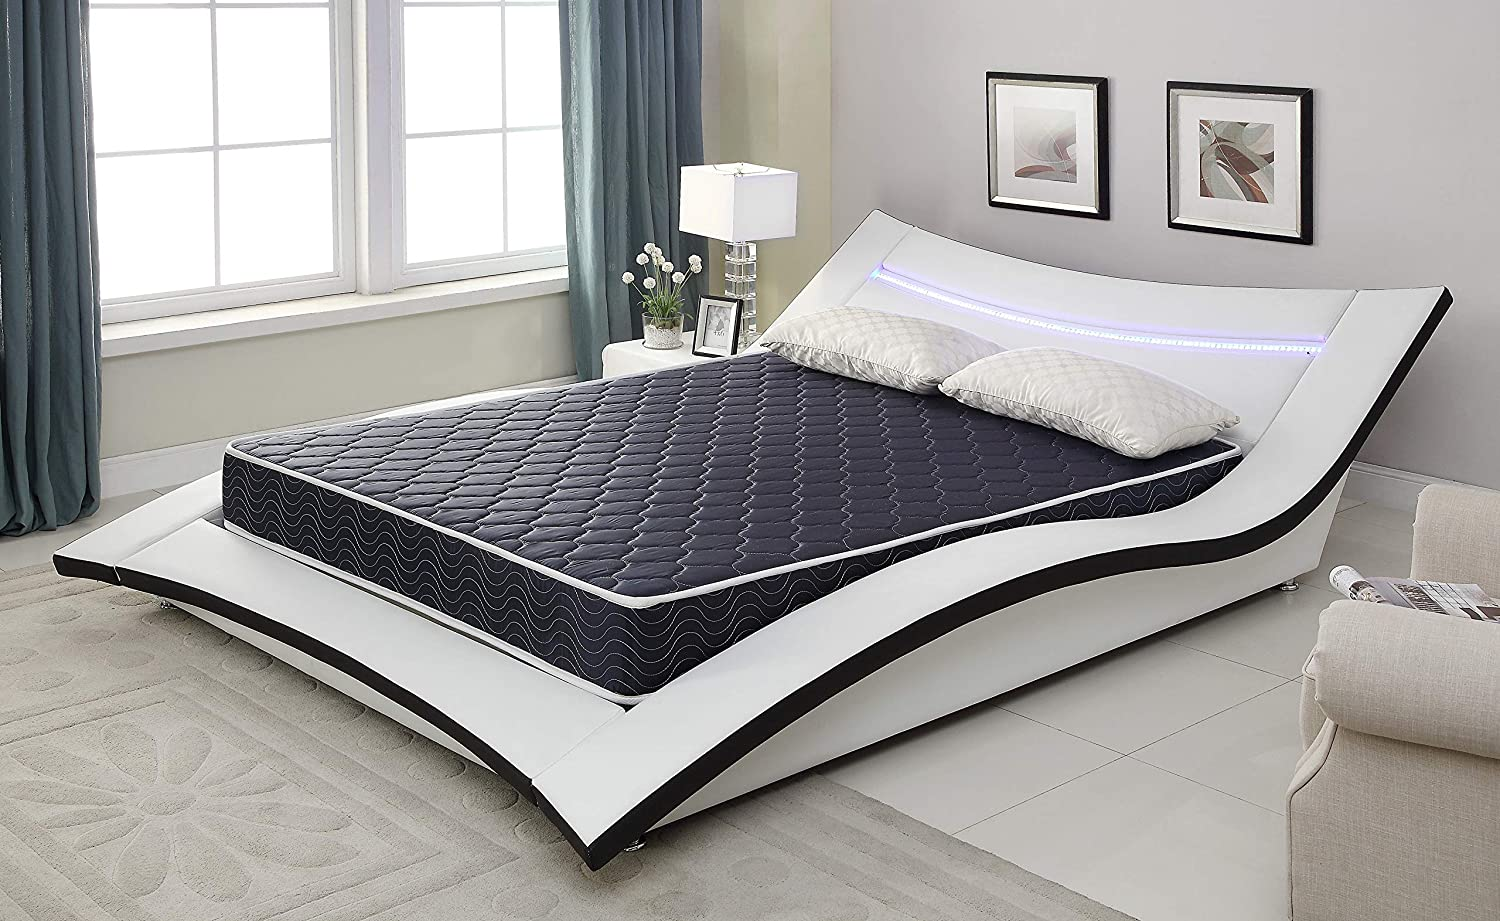 "AC Pacific 6"" Foam Mattress Covered in a Stylish Navy Blue Waterproof Fabric, Twin, Navy Blue"